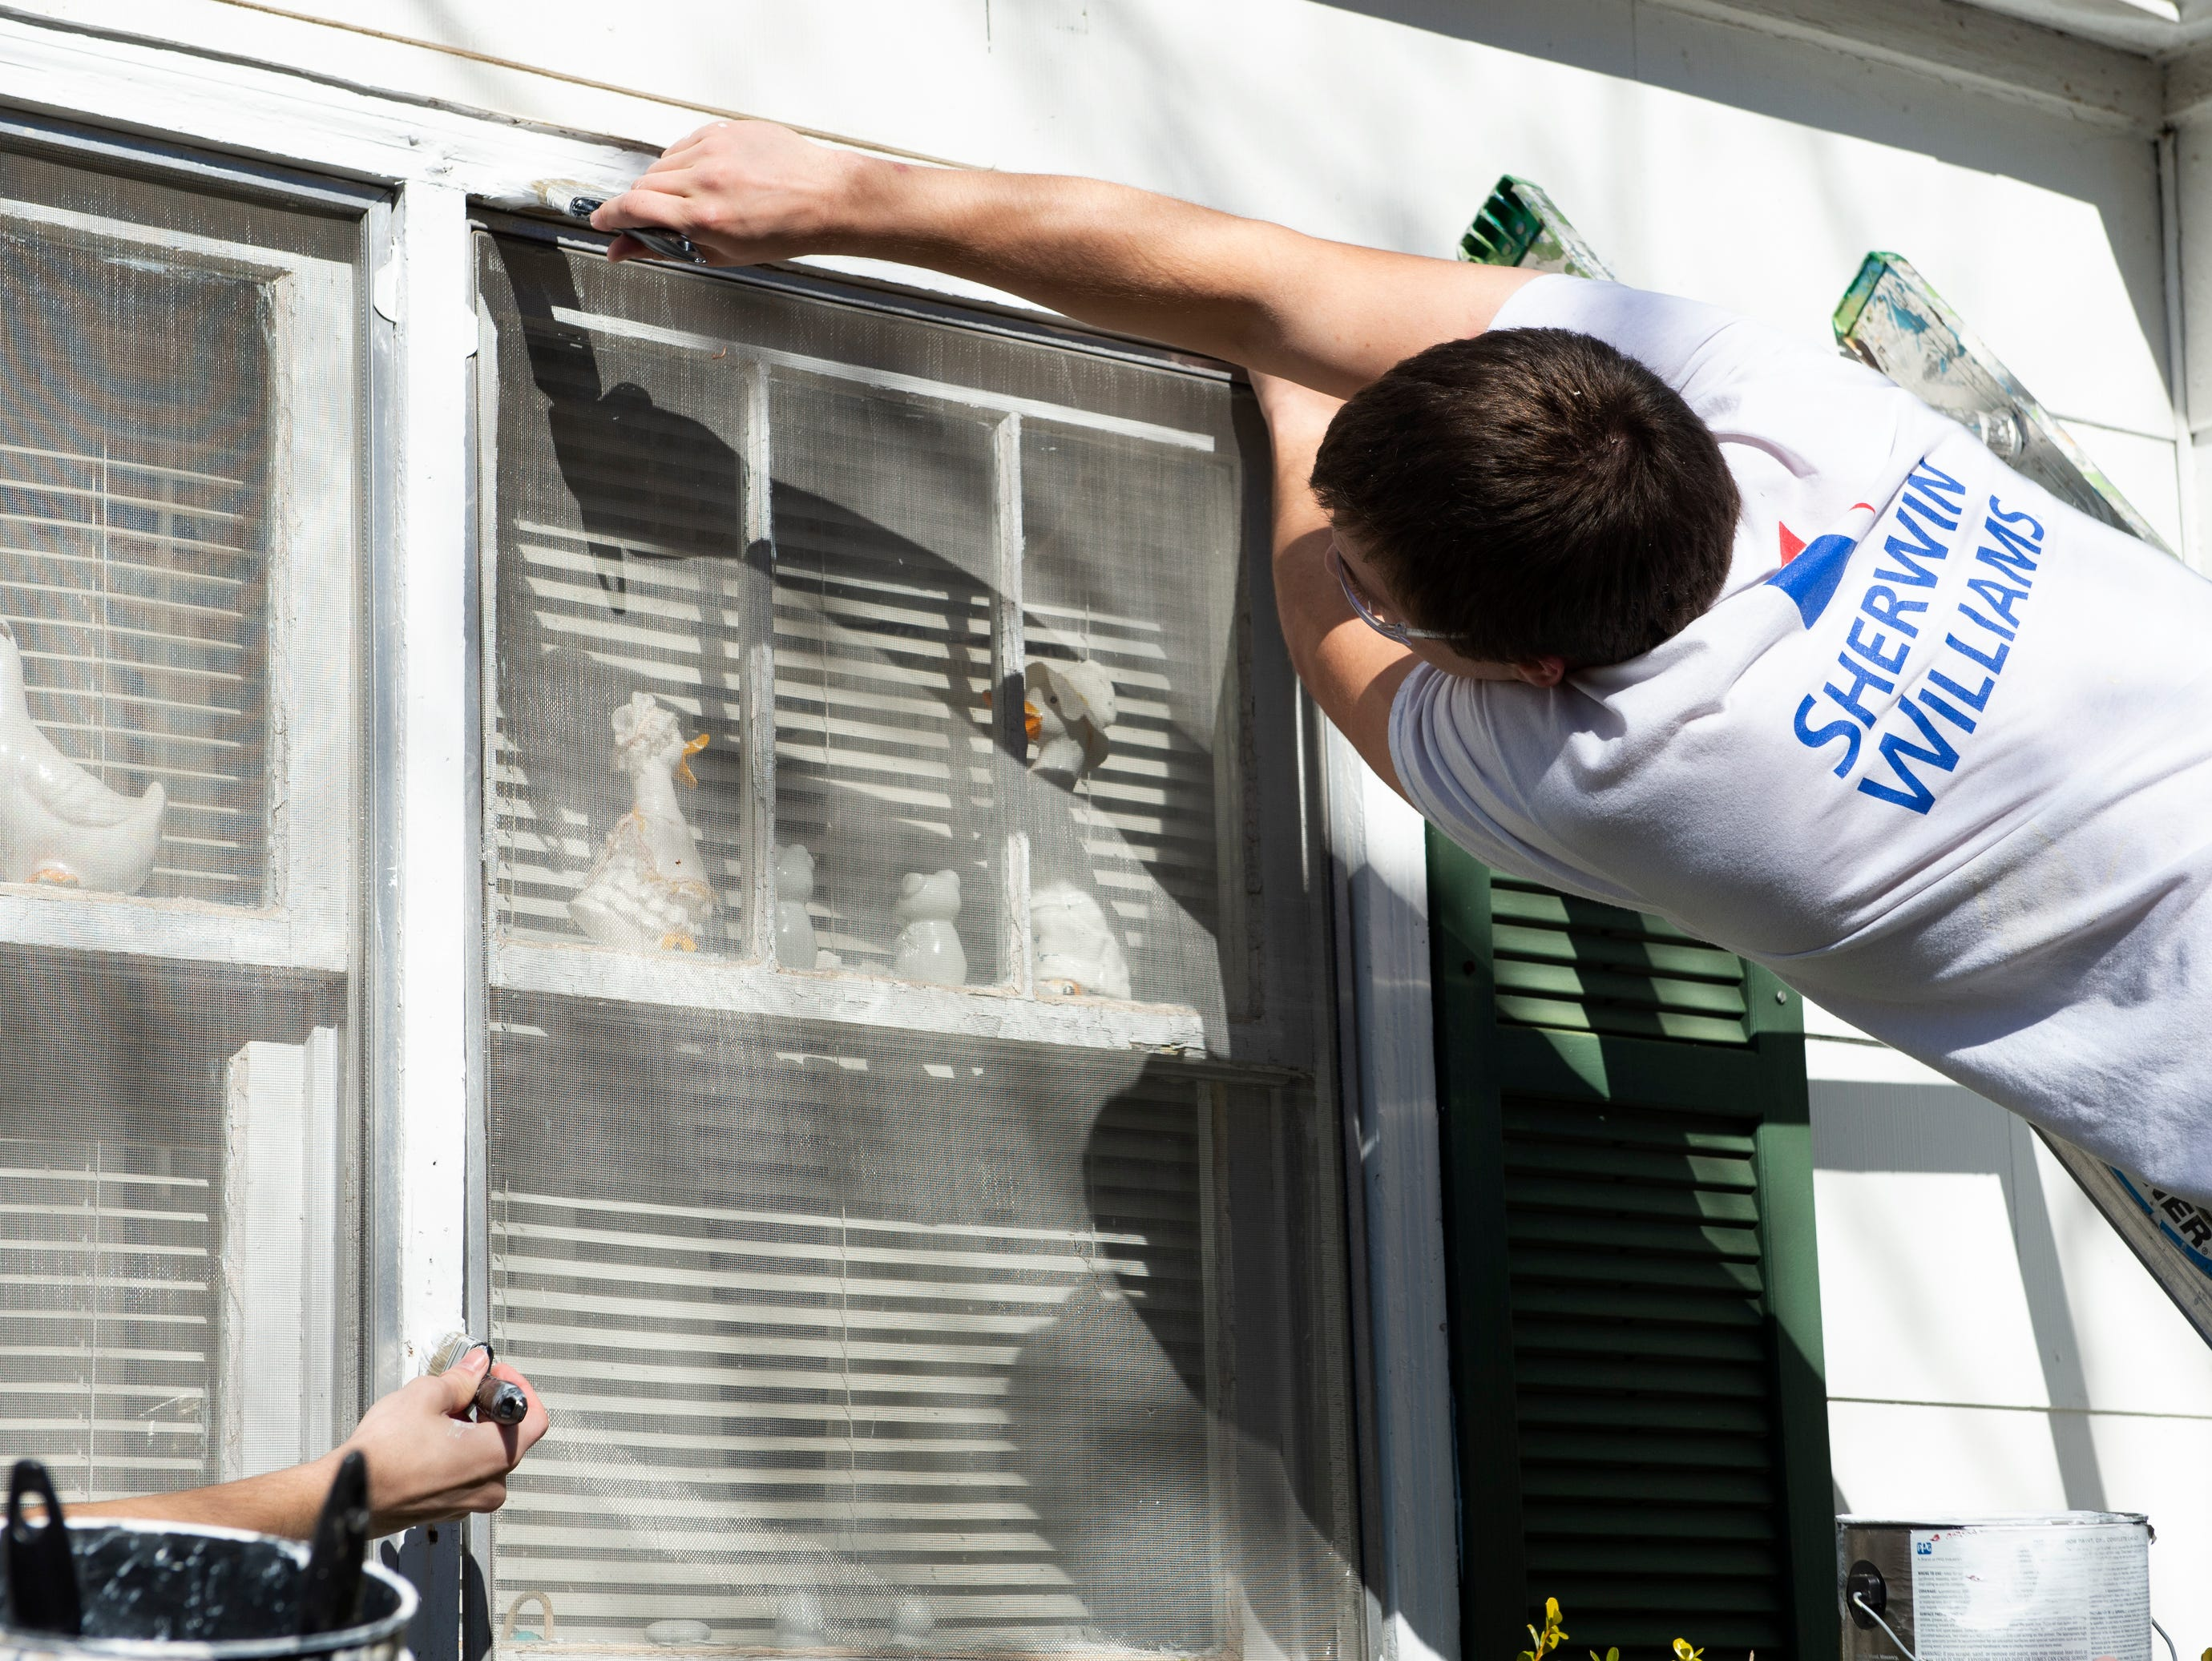 Bob Jones University students paint the windows of a home on Durham Street in Greenville on Martin Luther King, Jr. Day Monday, Jan. 21, 2019.